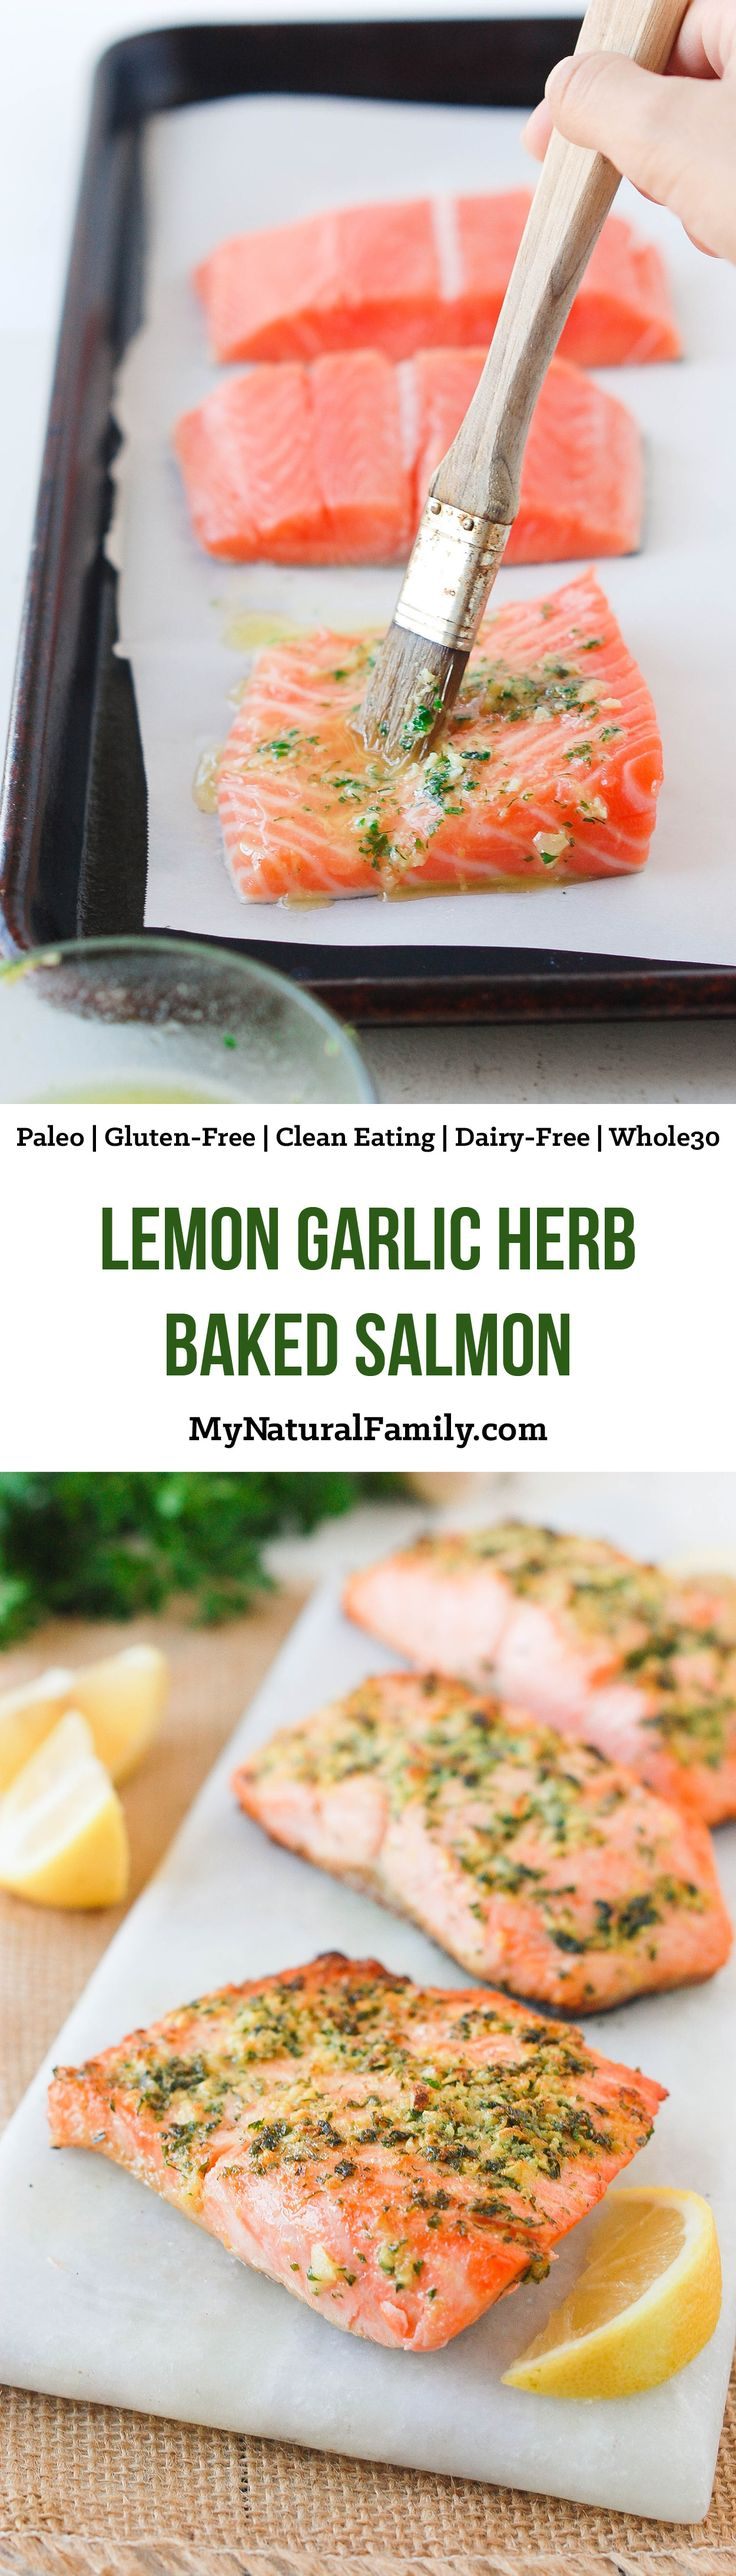 We have an Paleo salmon recipe for you - baked lemon garlic herb crusted salmon. This fish is light and flaky and it only takes 10 minutes to bake.